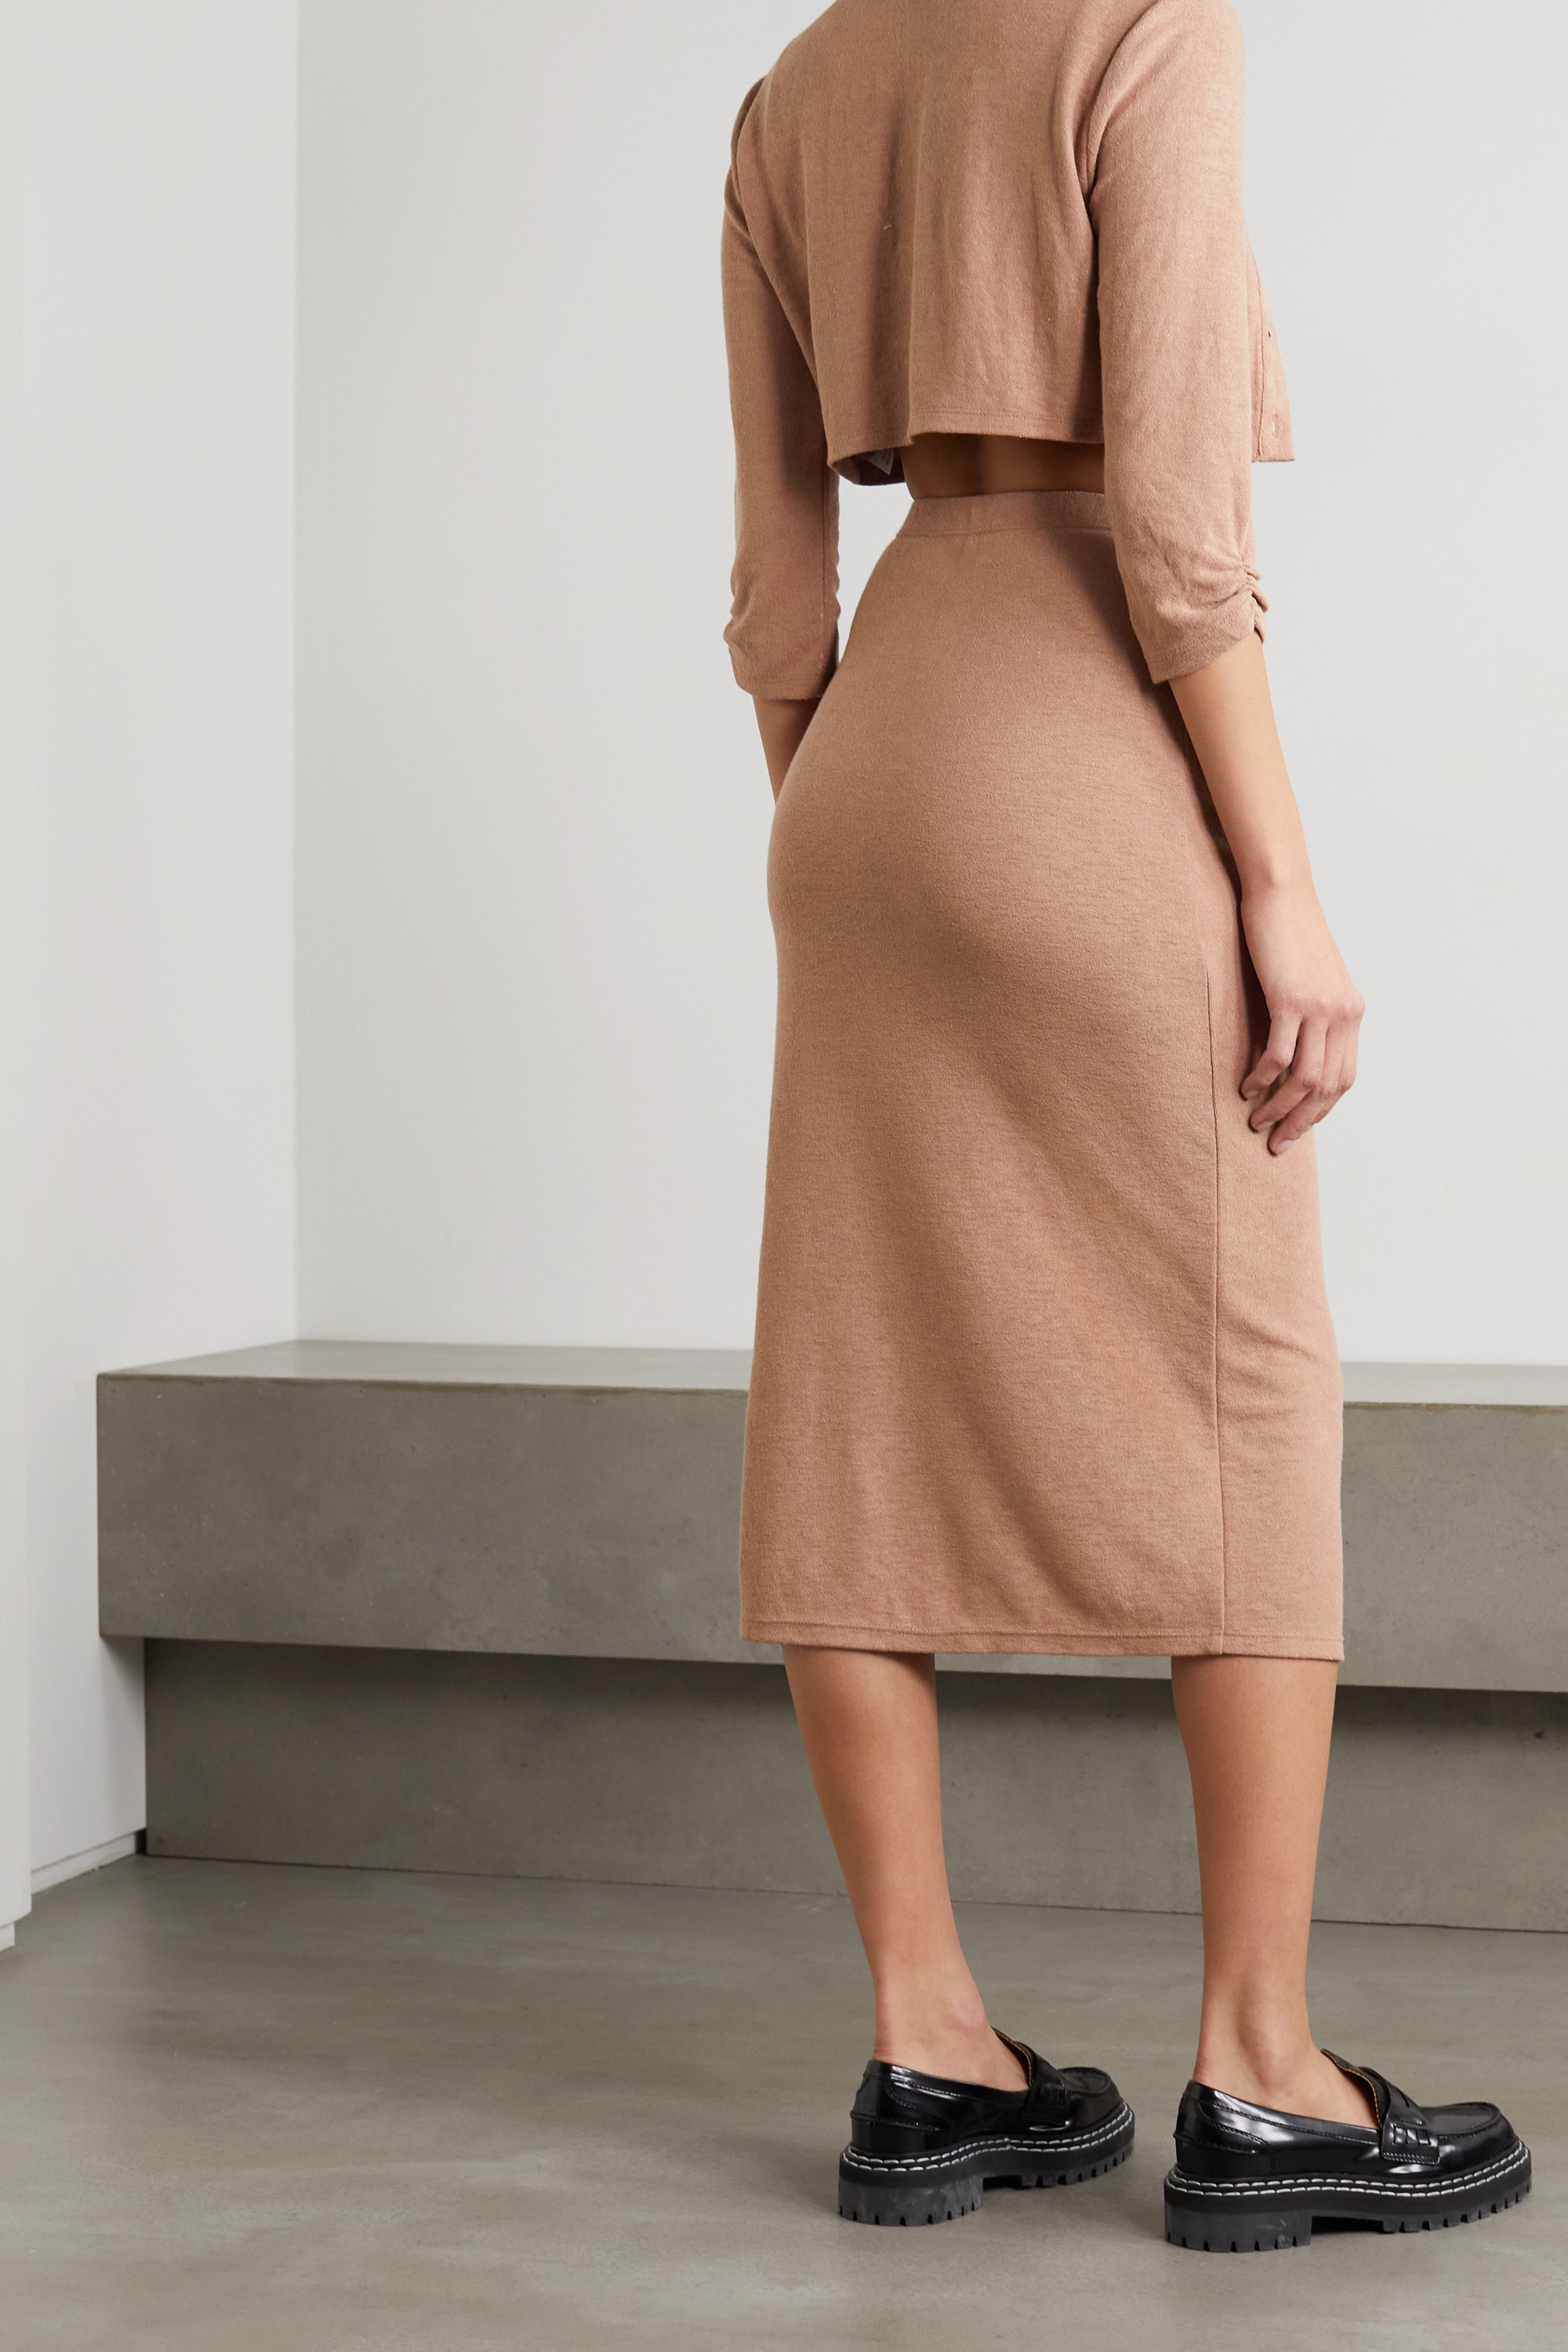 REFORMATION + NET SUSTAIN Janice knitted cardigan, camisole and midi skirt set